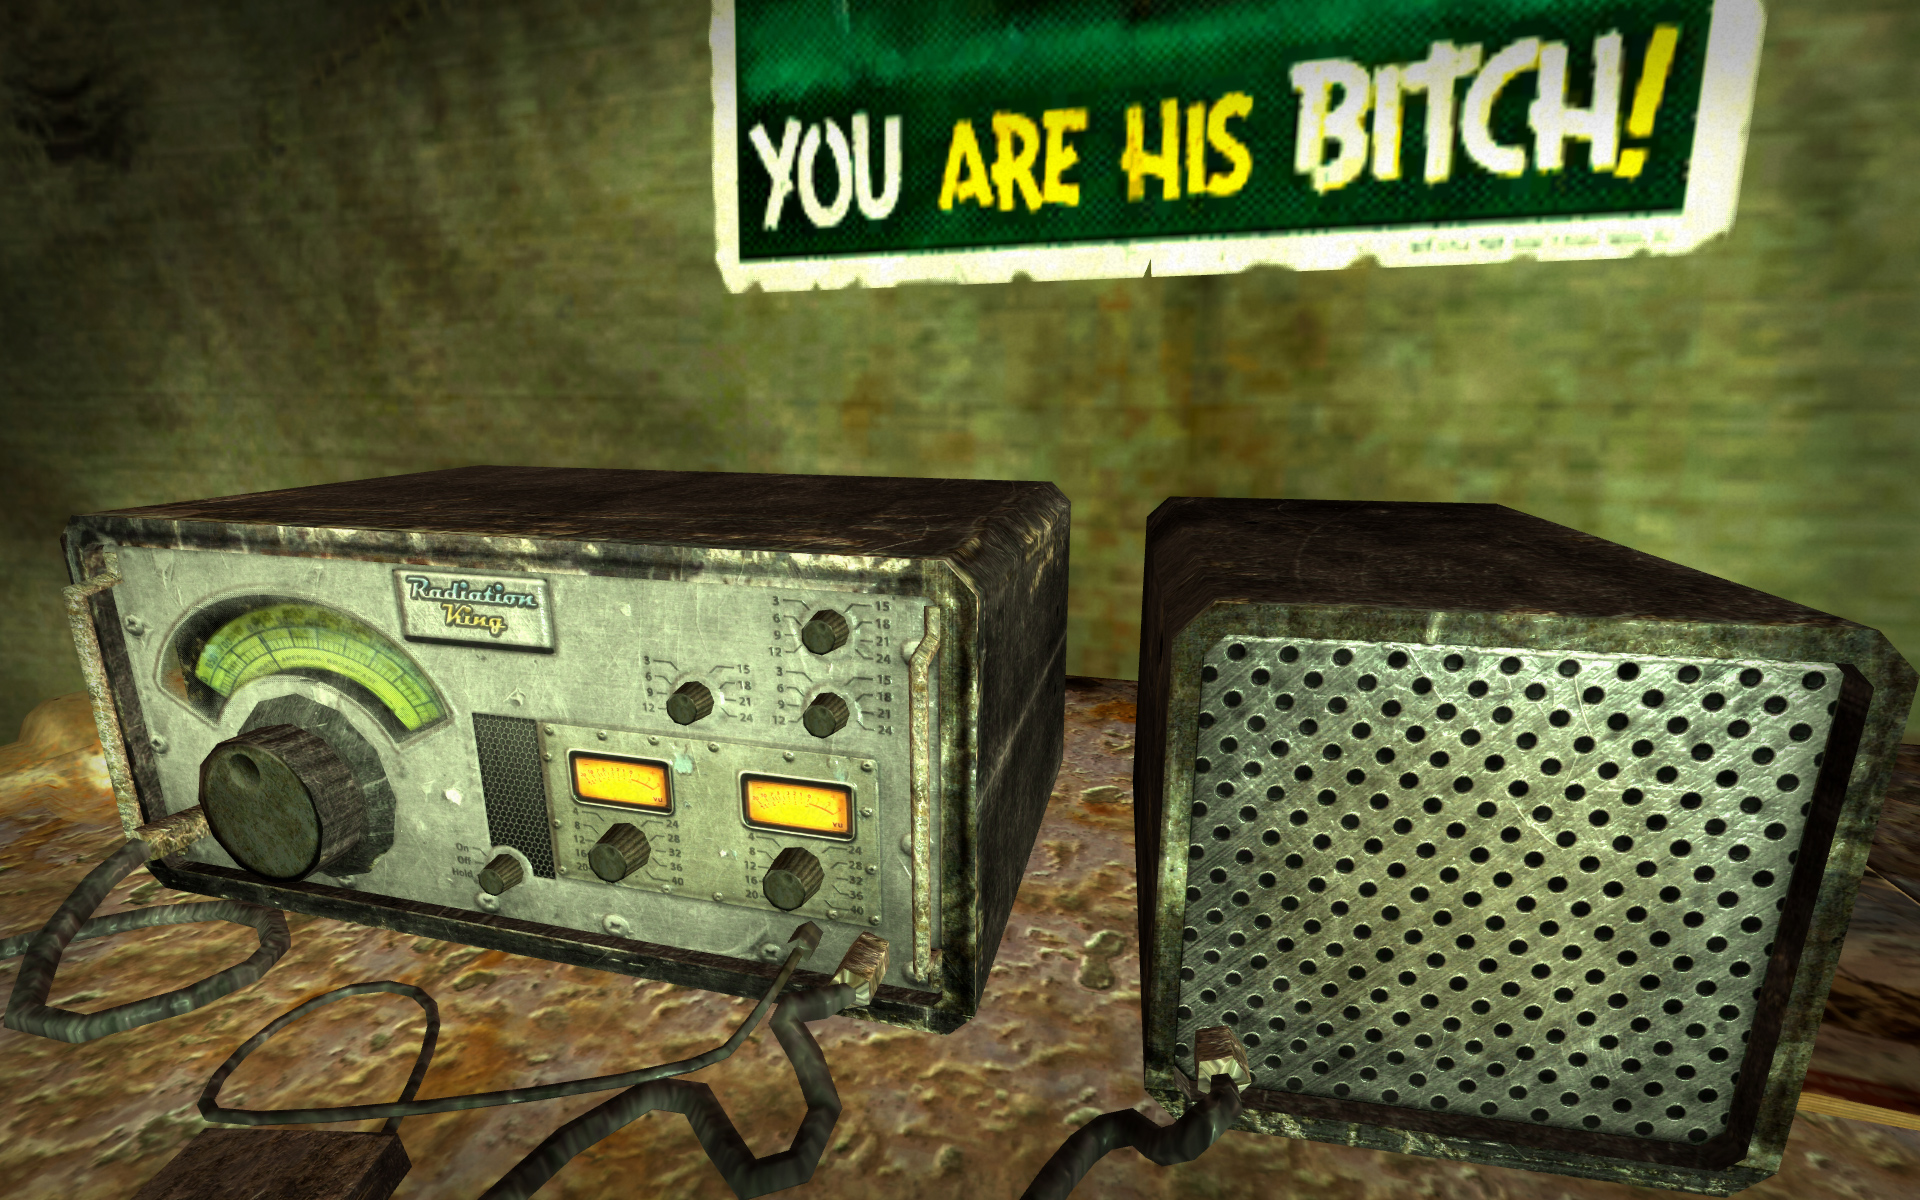 Ojo Bueno Ham Radio At Fallout New Vegas Mods And Community